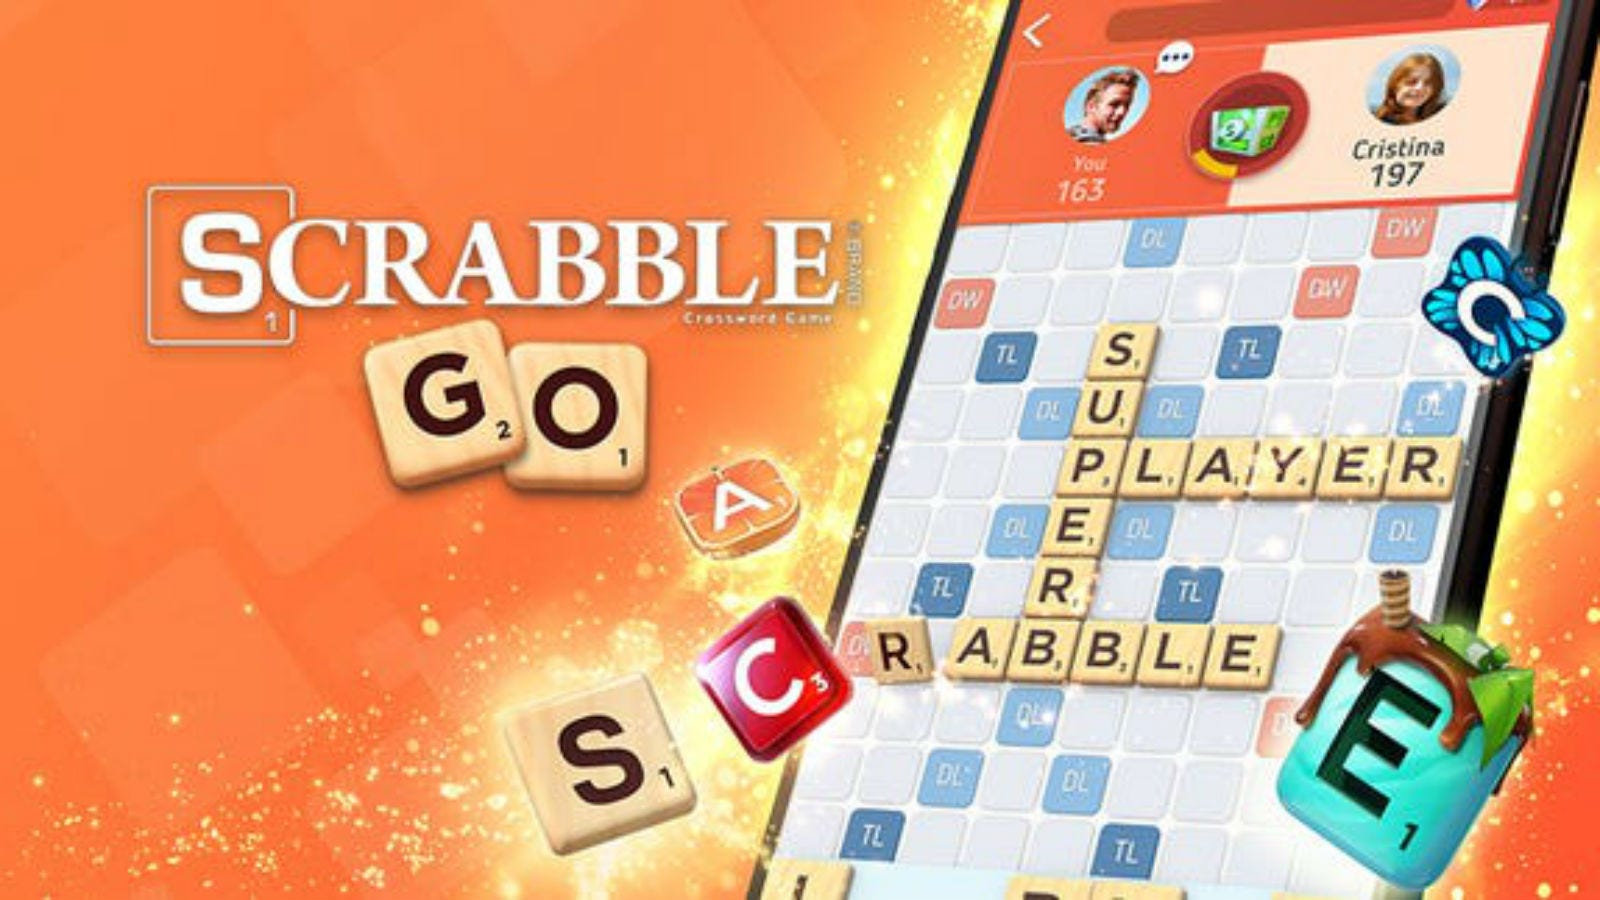 The Scrabble GO logo and game ad.